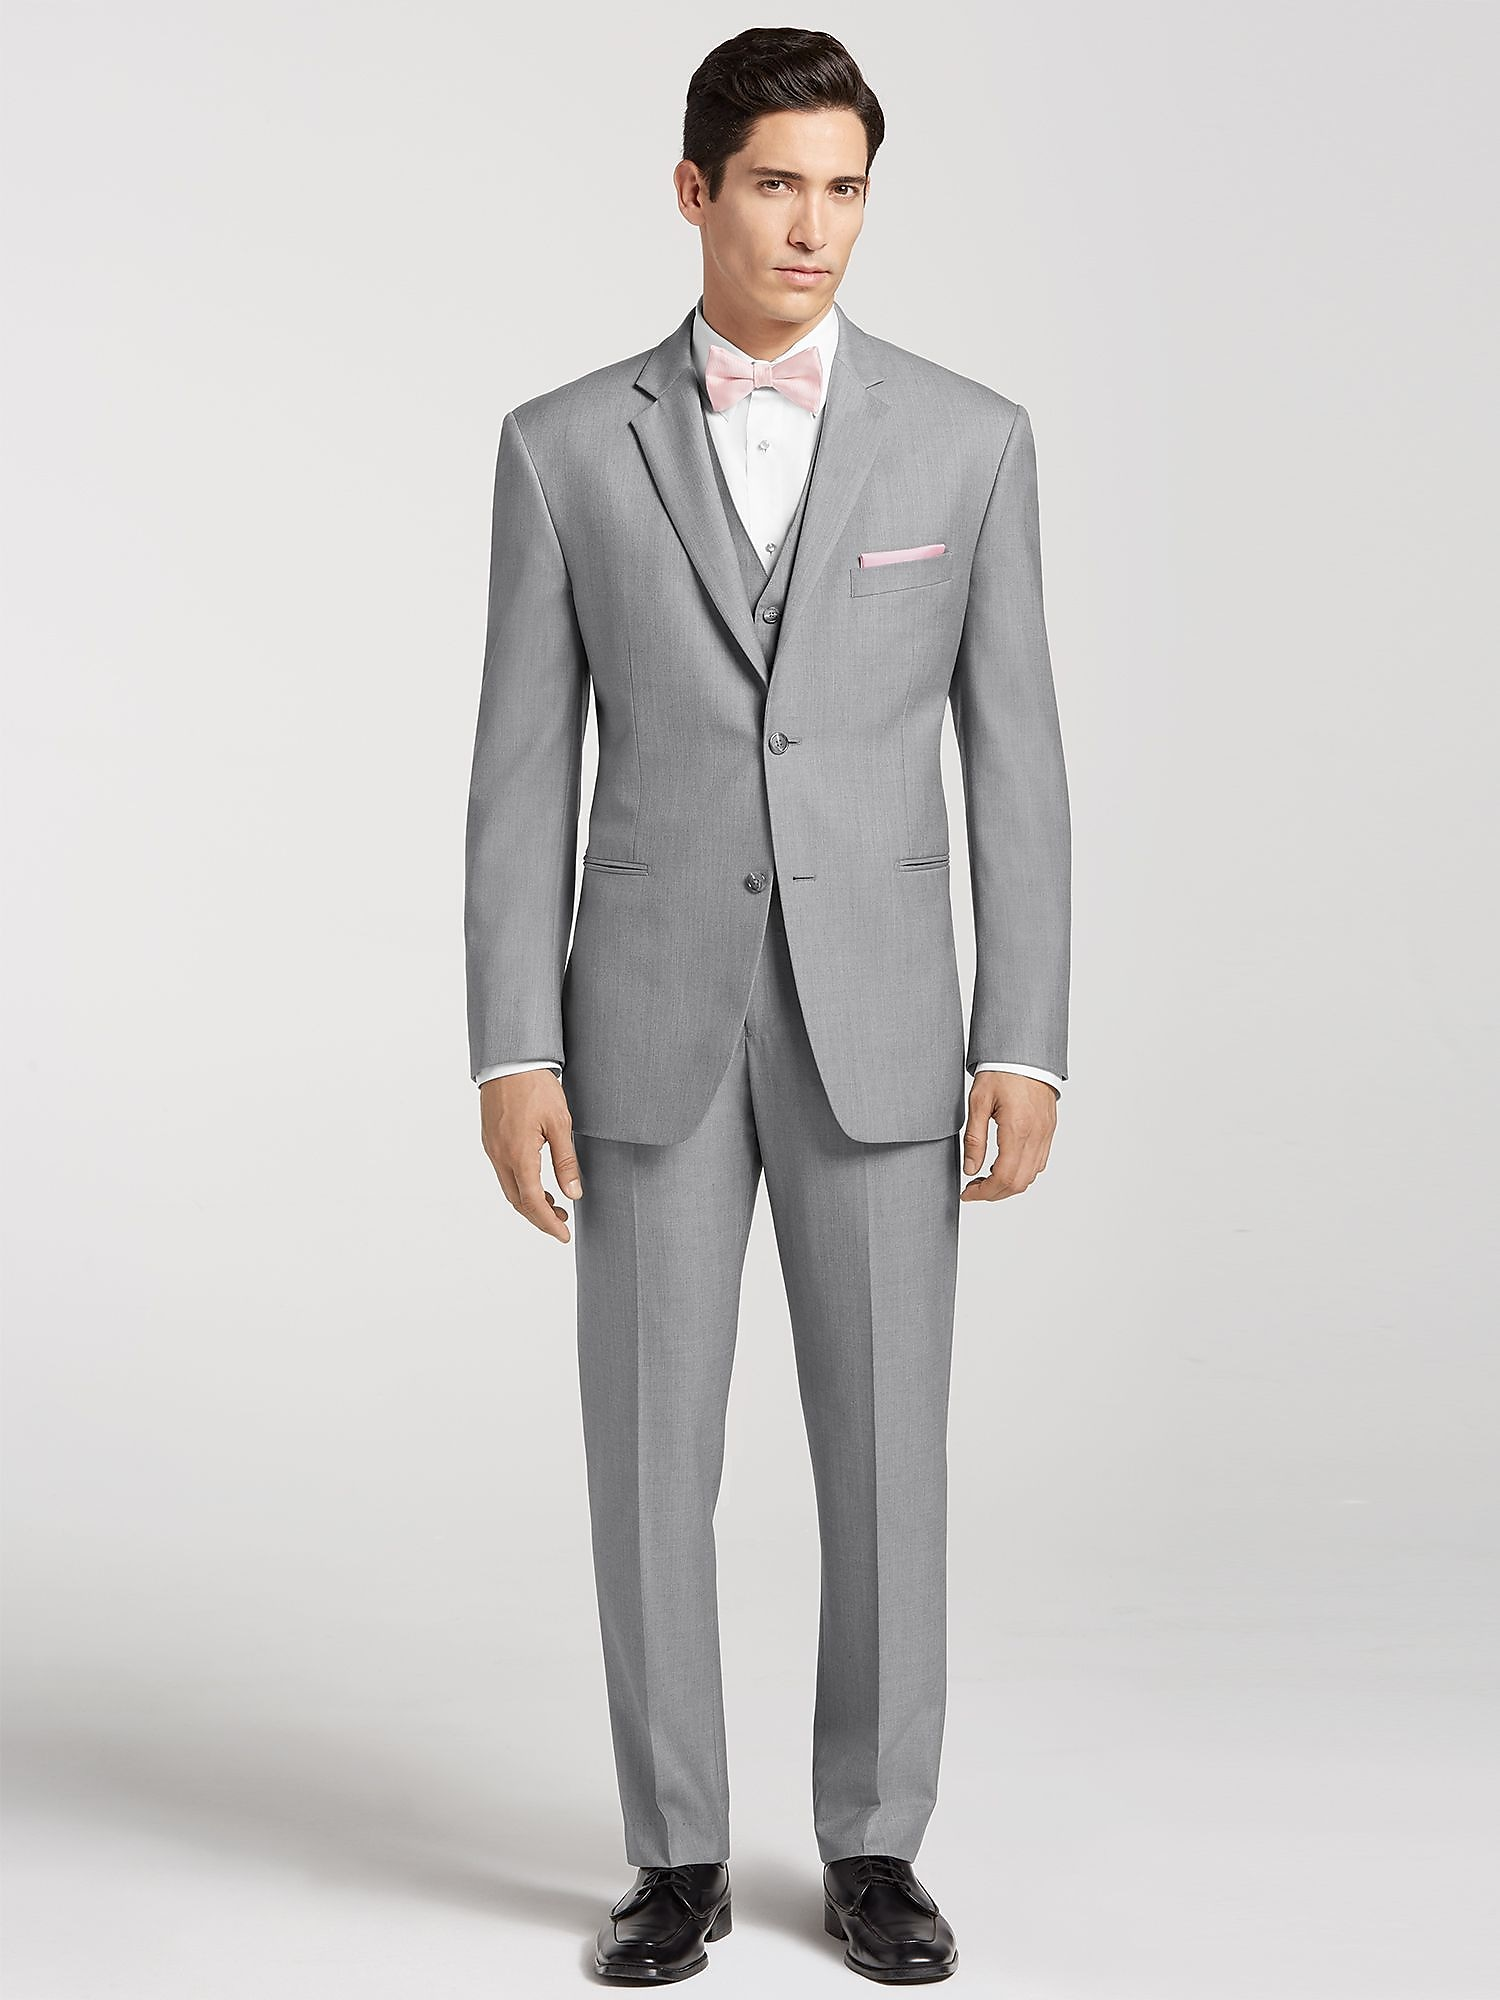 vintage s gray suit by pronto uomo suit rental